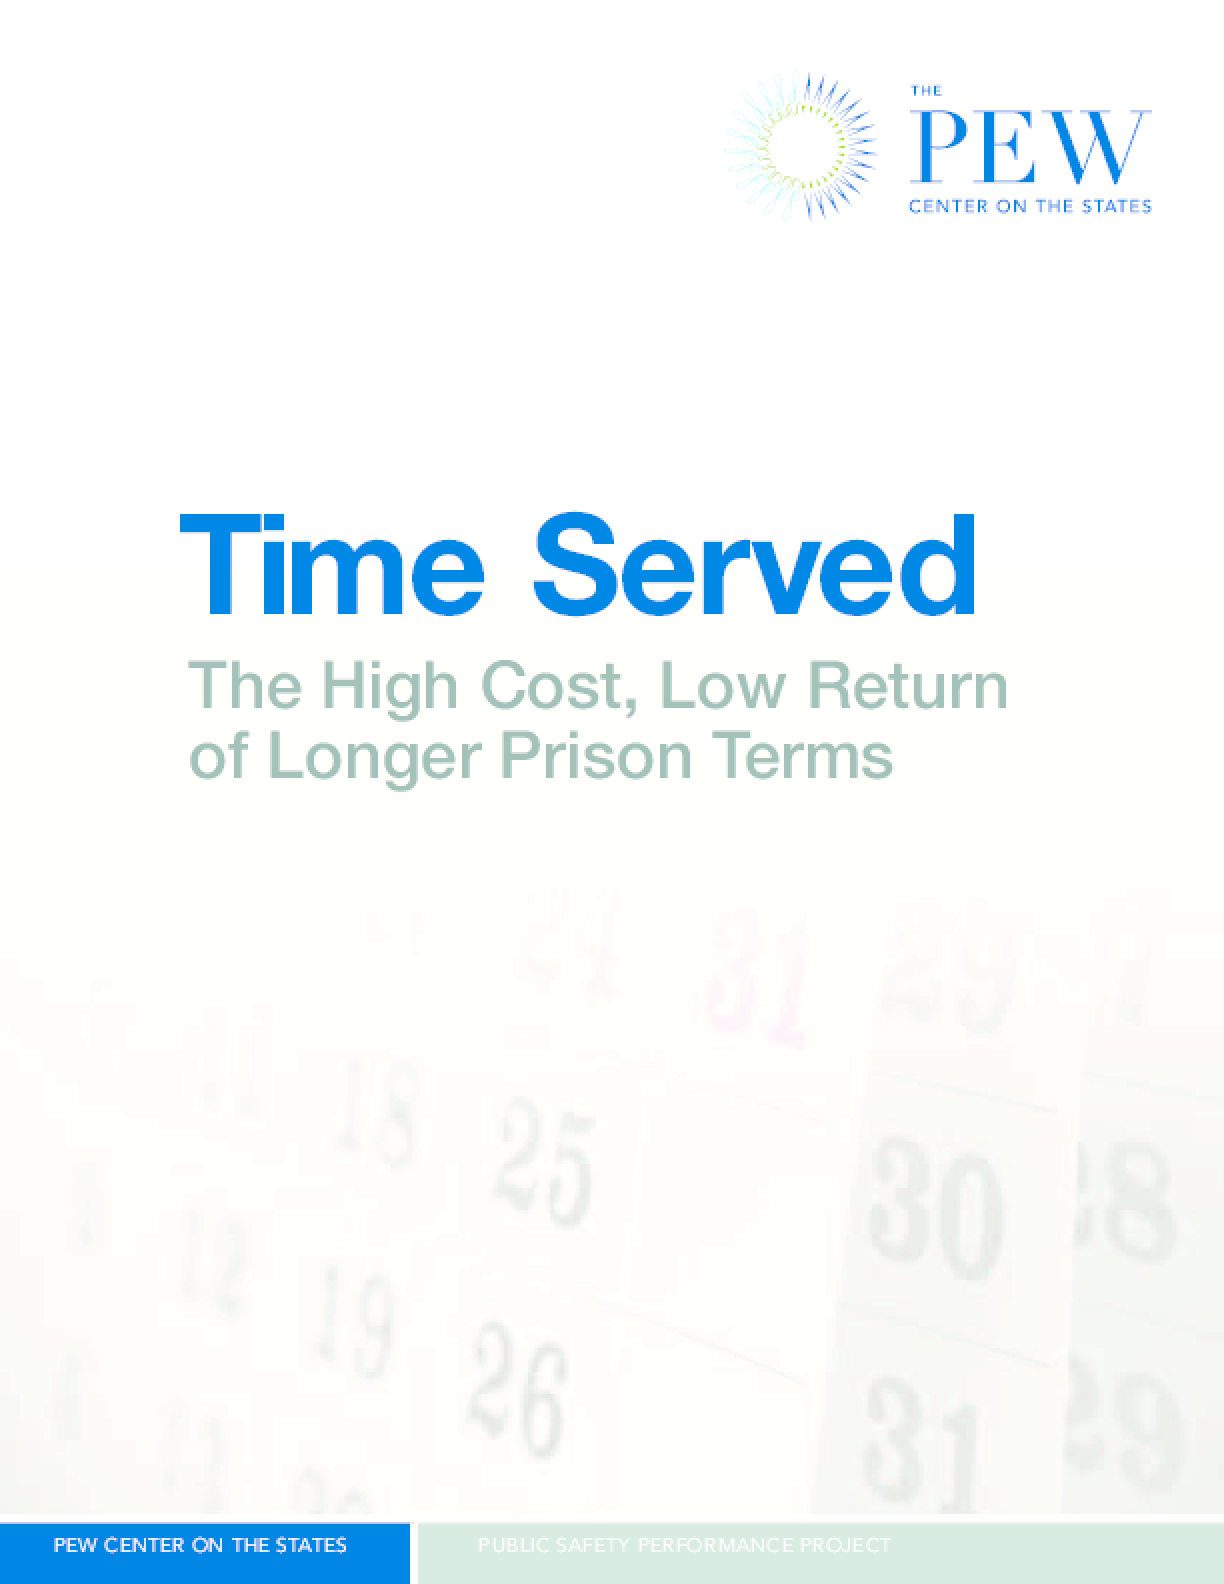 Time Served: The High Cost, Low Return of Longer Prison Terms